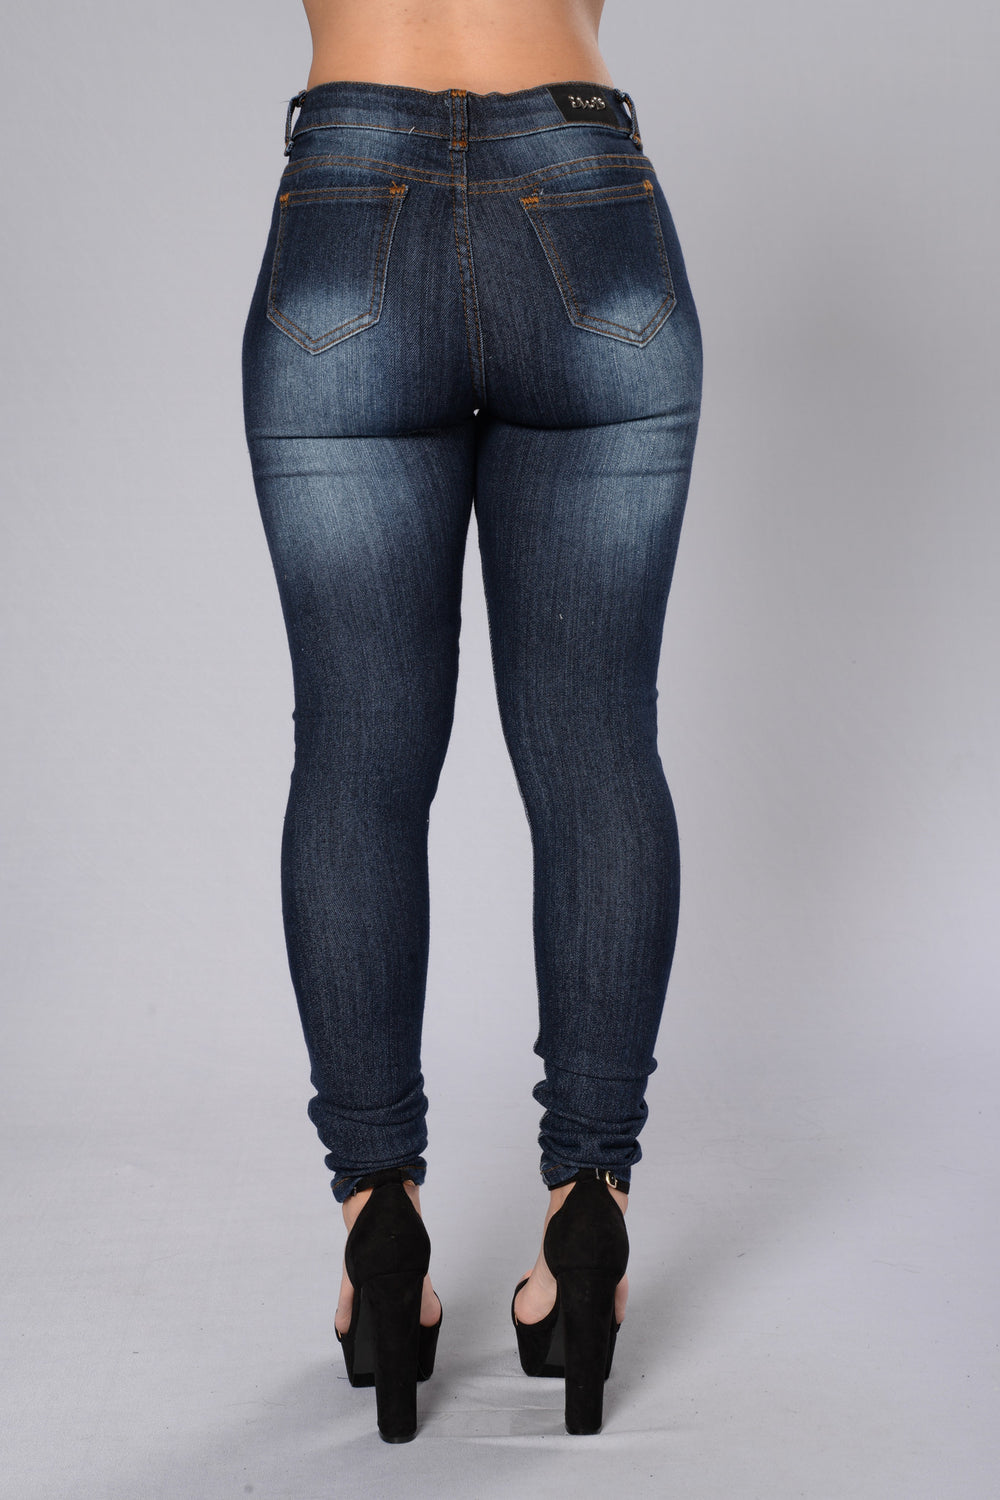 Midnight Blues Jeans